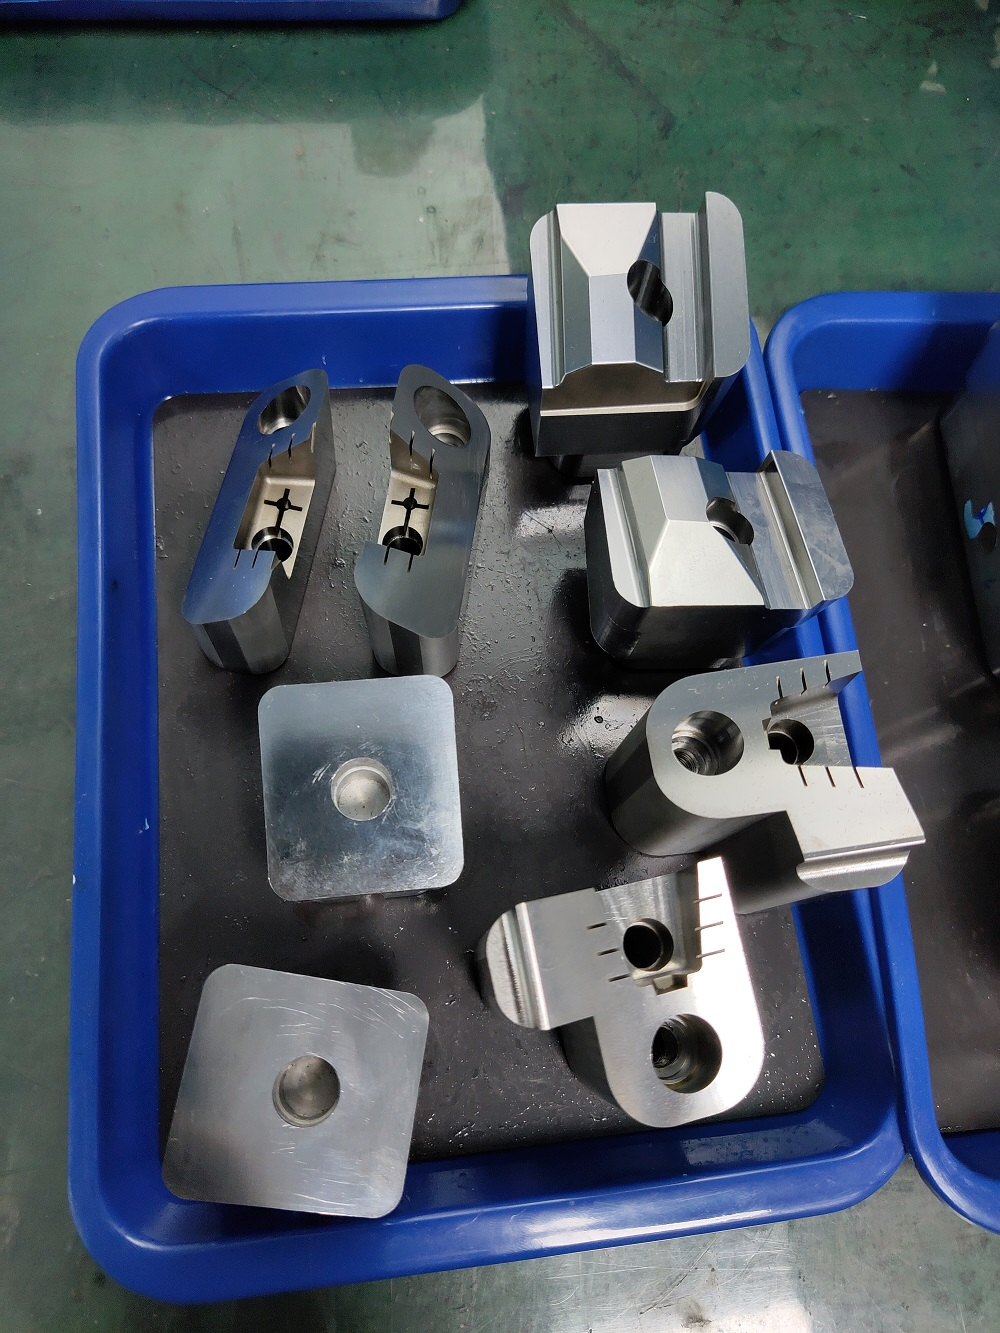 2020 Chinese plant of precision mold component in Dongguan